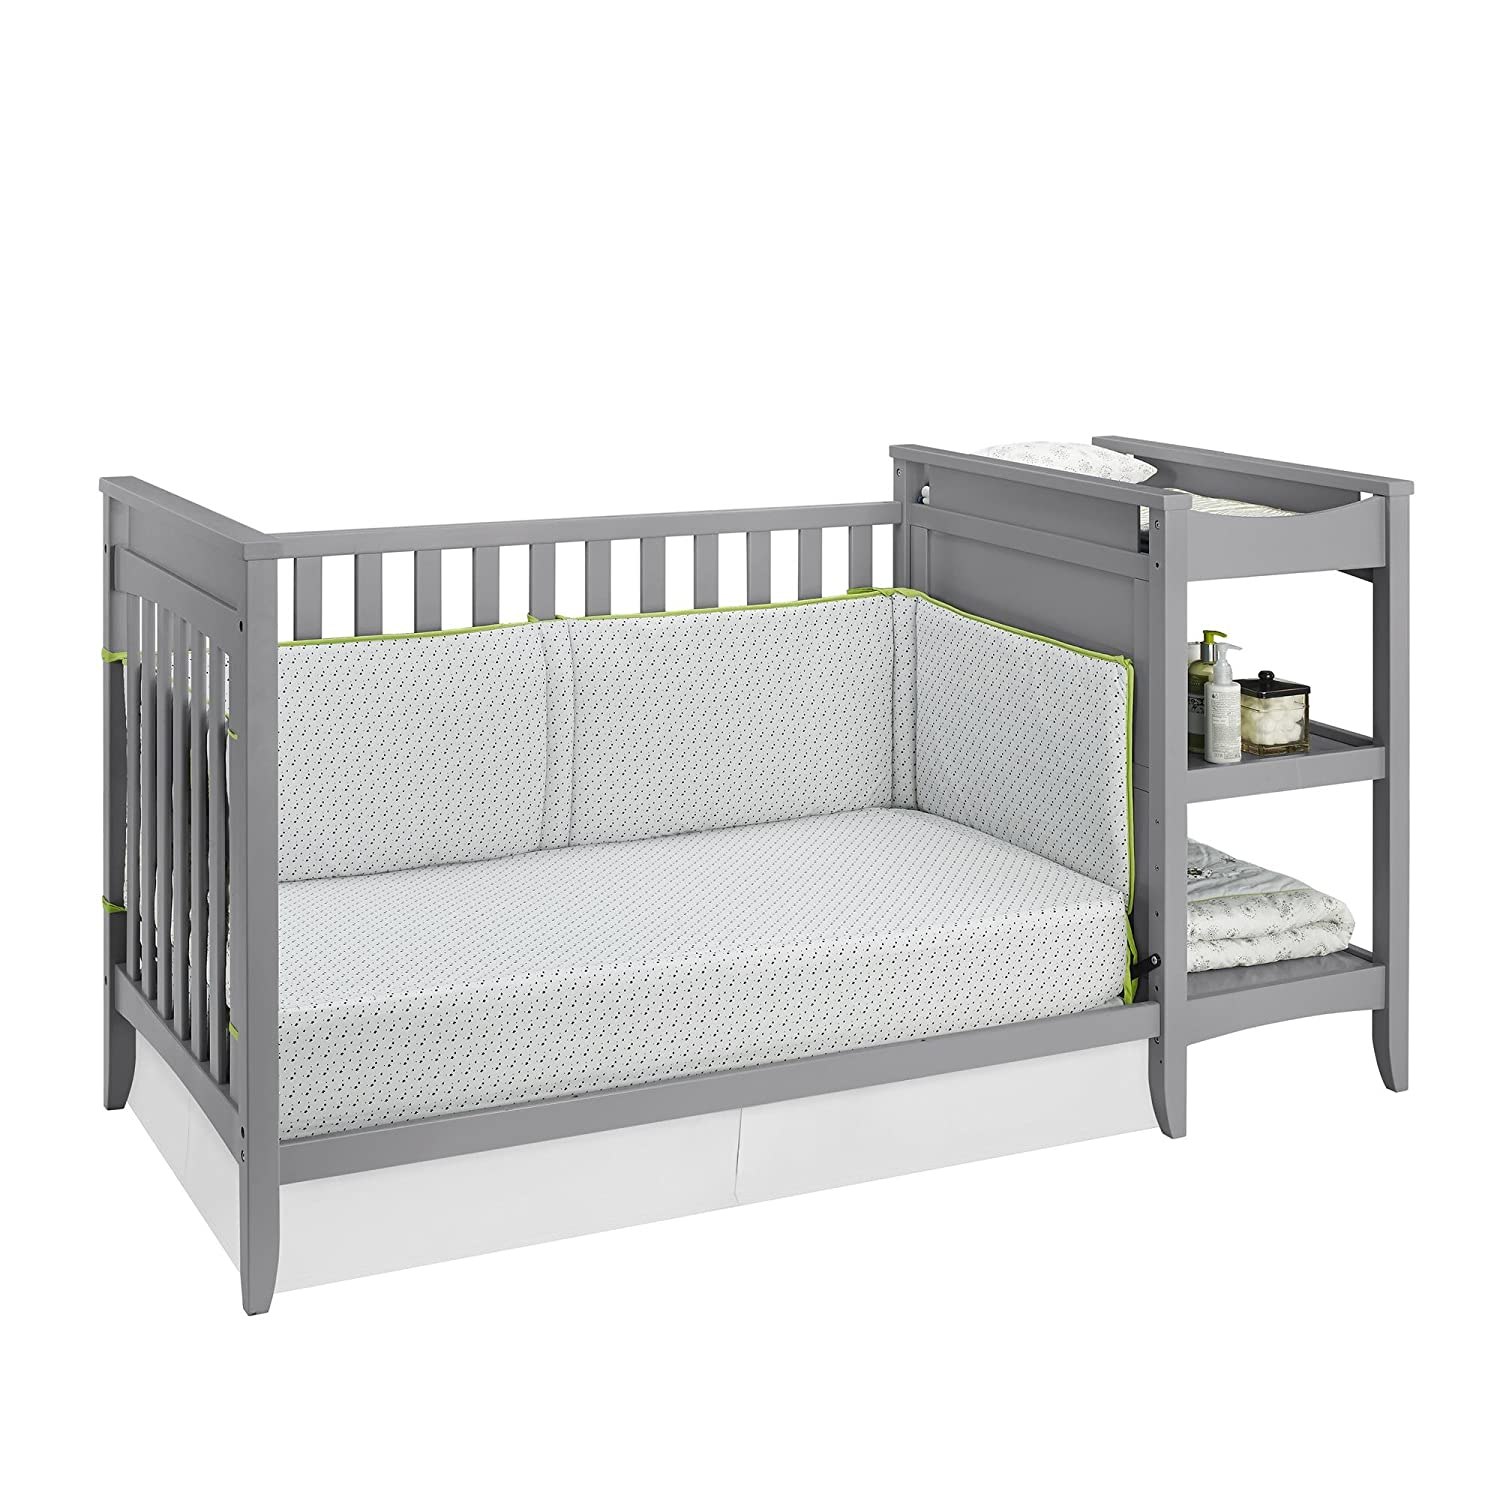 High Quality Amazon.com : Baby Relax Emma 2 In 1 Crib And Changing Table Combo, Gray :  Baby